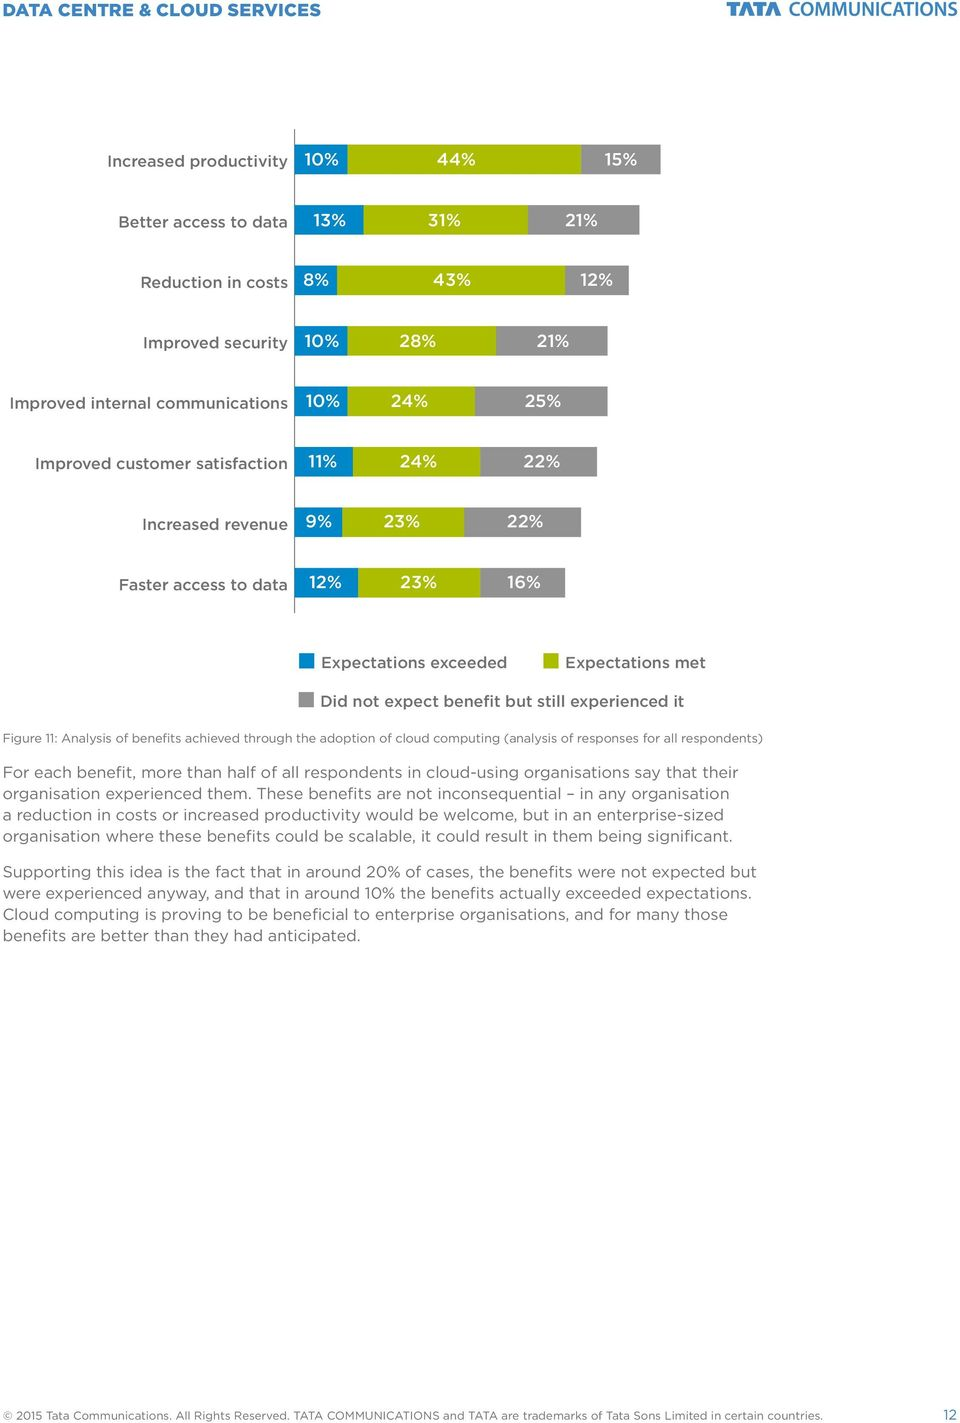 benefits achieved through the adoption of cloud computing (analysis of responses for all respondents) For each benefit, more than half of all respondents in cloud-using organisations say that their